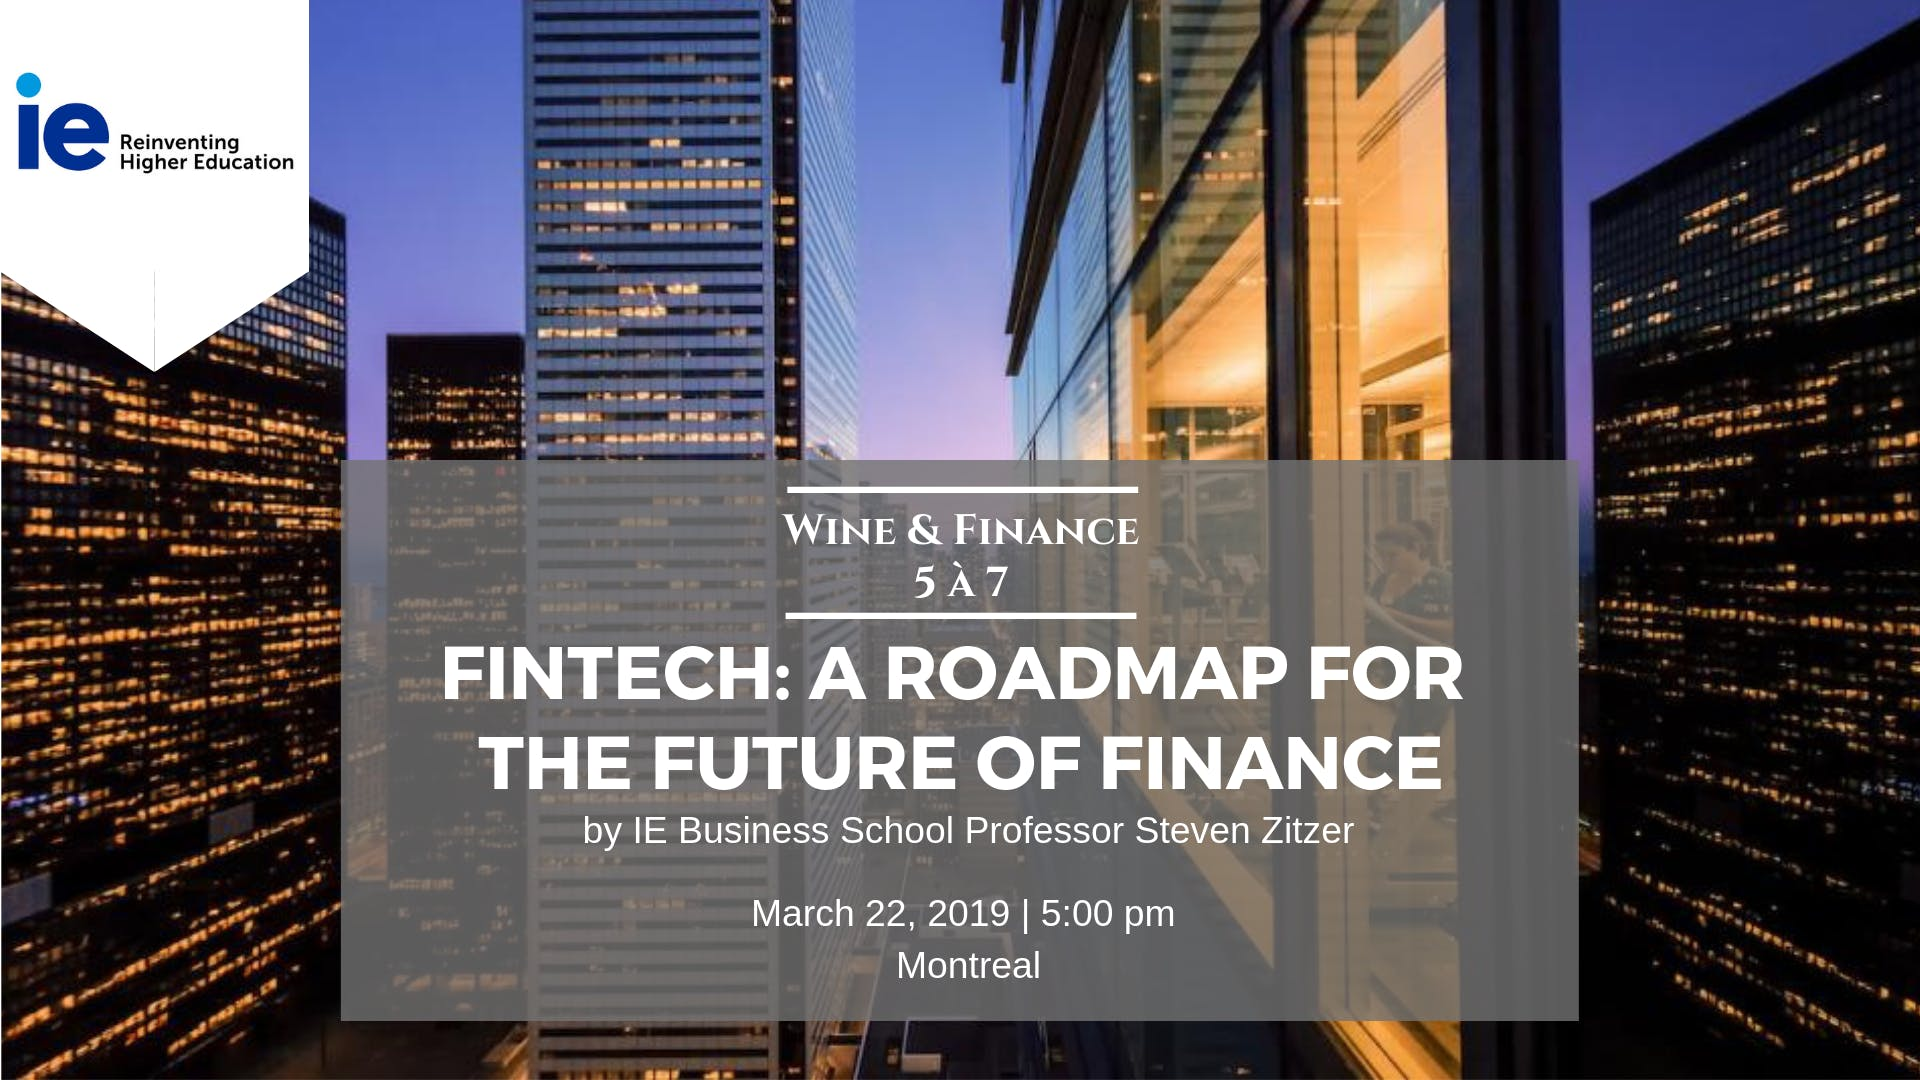 FinTech: A Road Map for the Future of Finance